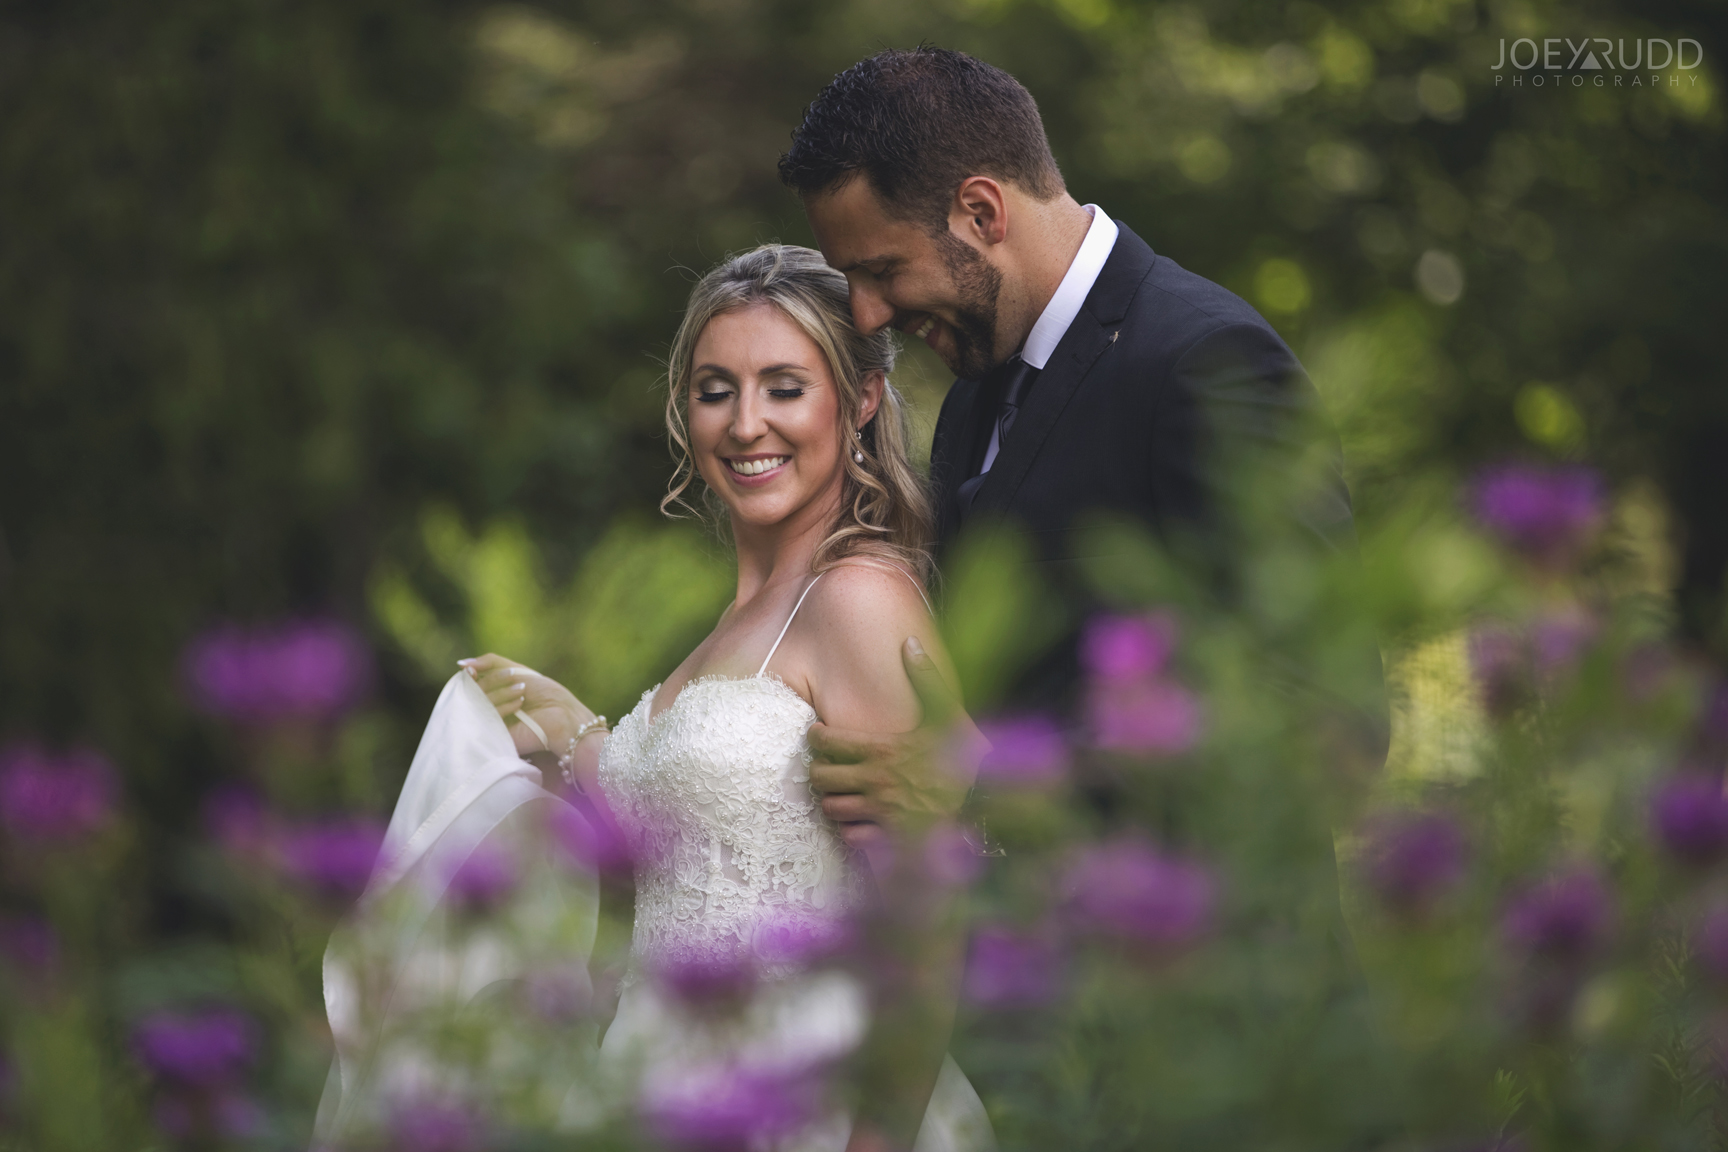 Calabogie Wedding at Barnet Park by Ottawa Wedding Photographer Joey Rudd Photography Dreamy